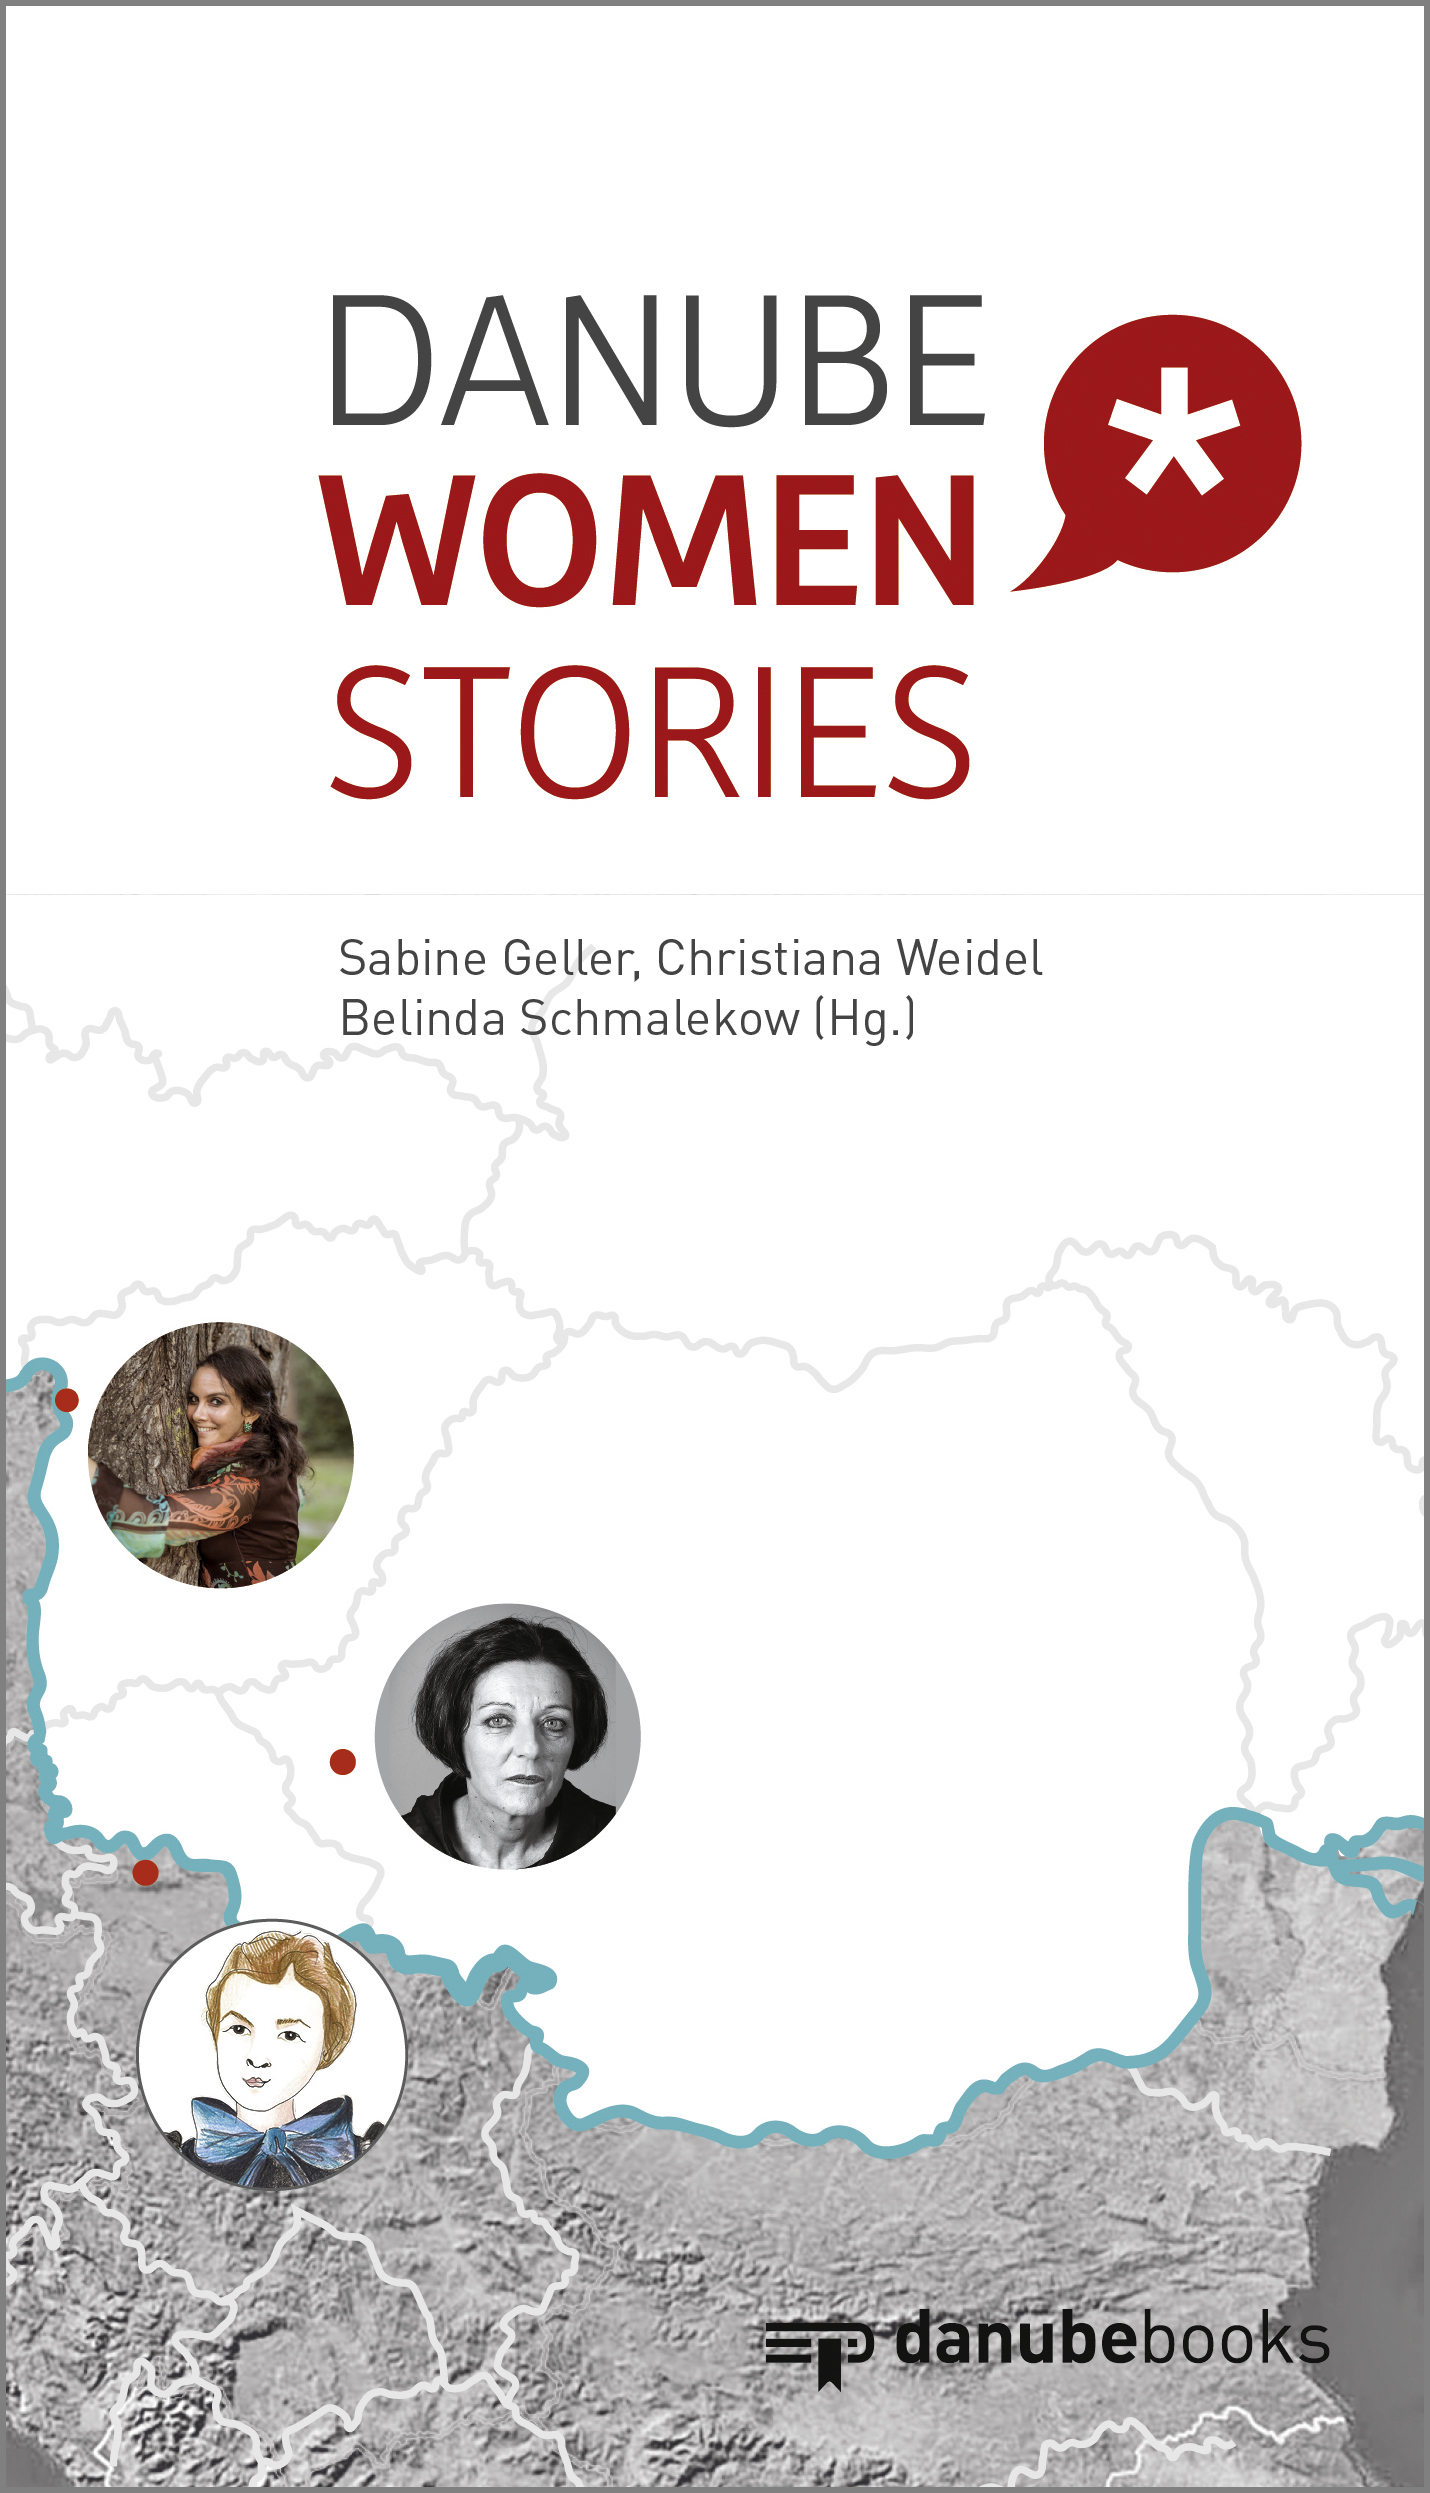 Danube Women Stories Vol. 1